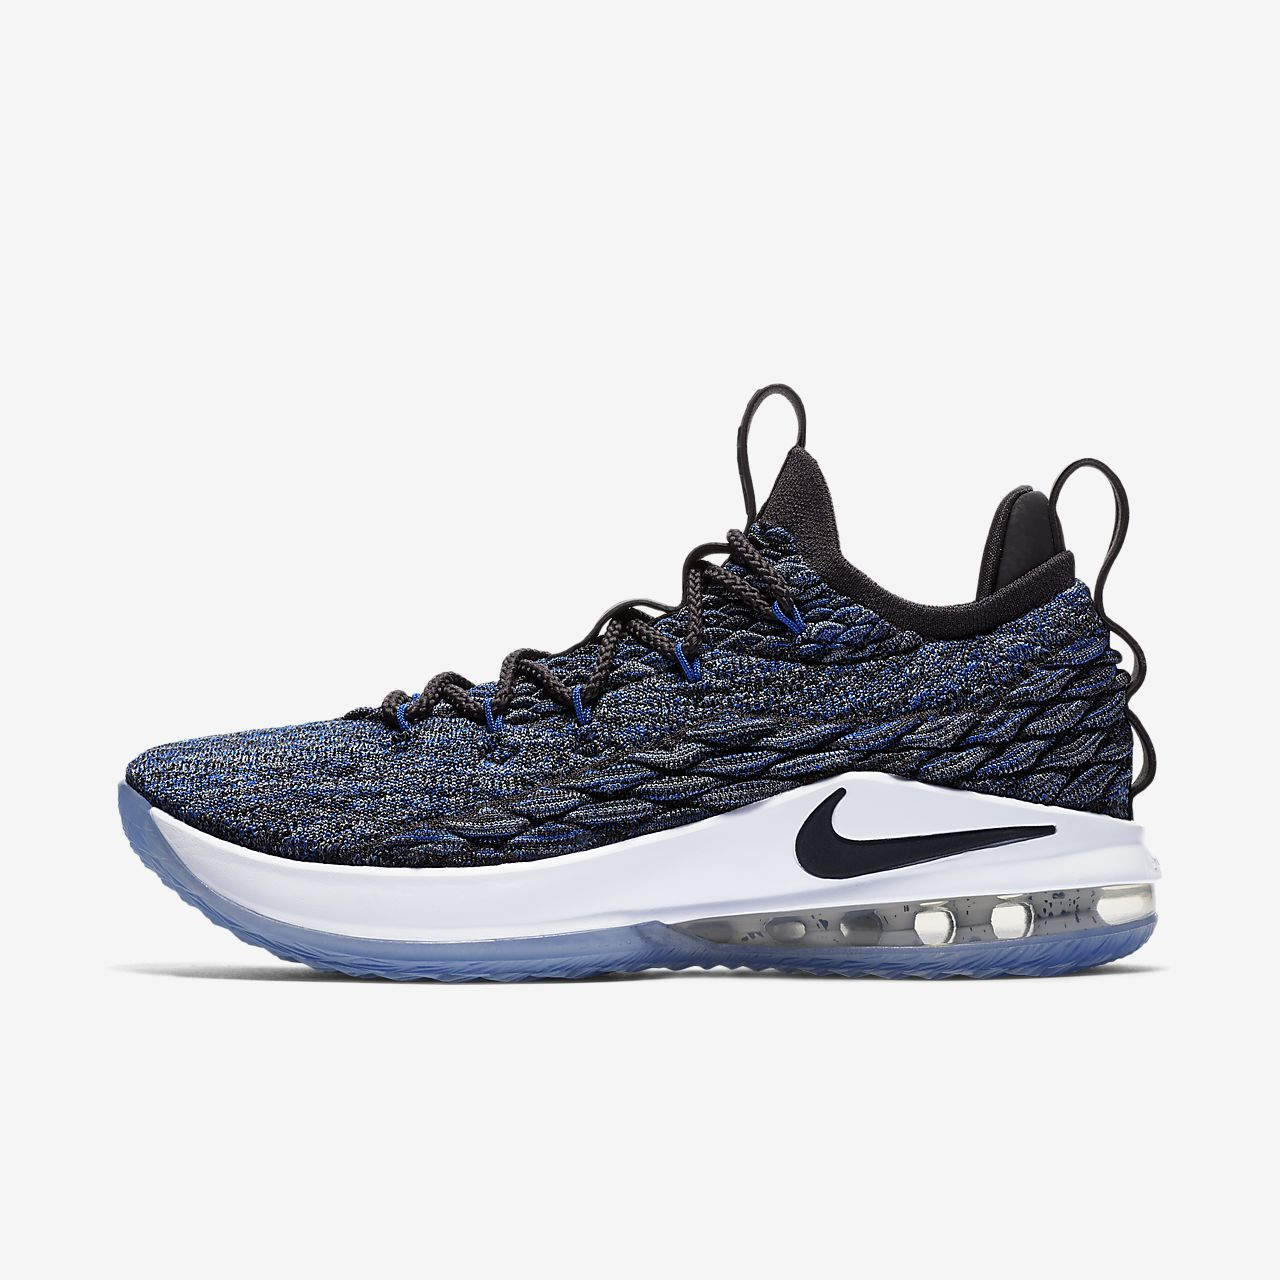 wholesale dealer d7f61 665f1 ... LeBron 15 Low Basketball Shoe